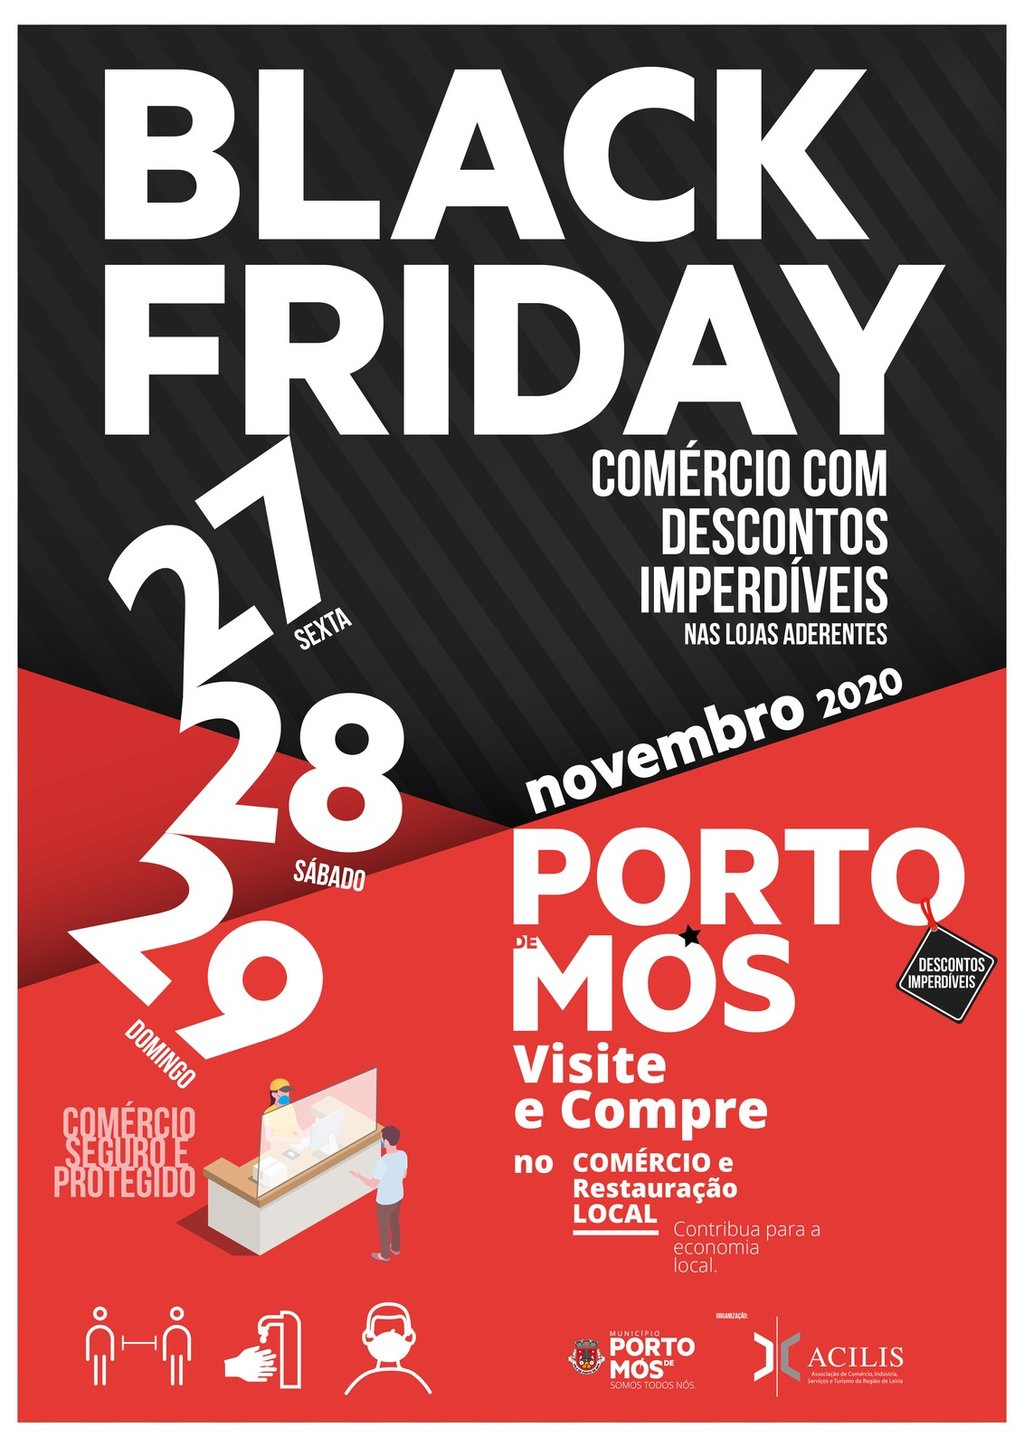 Black friday portodemos 2020 01 1 1024 2500